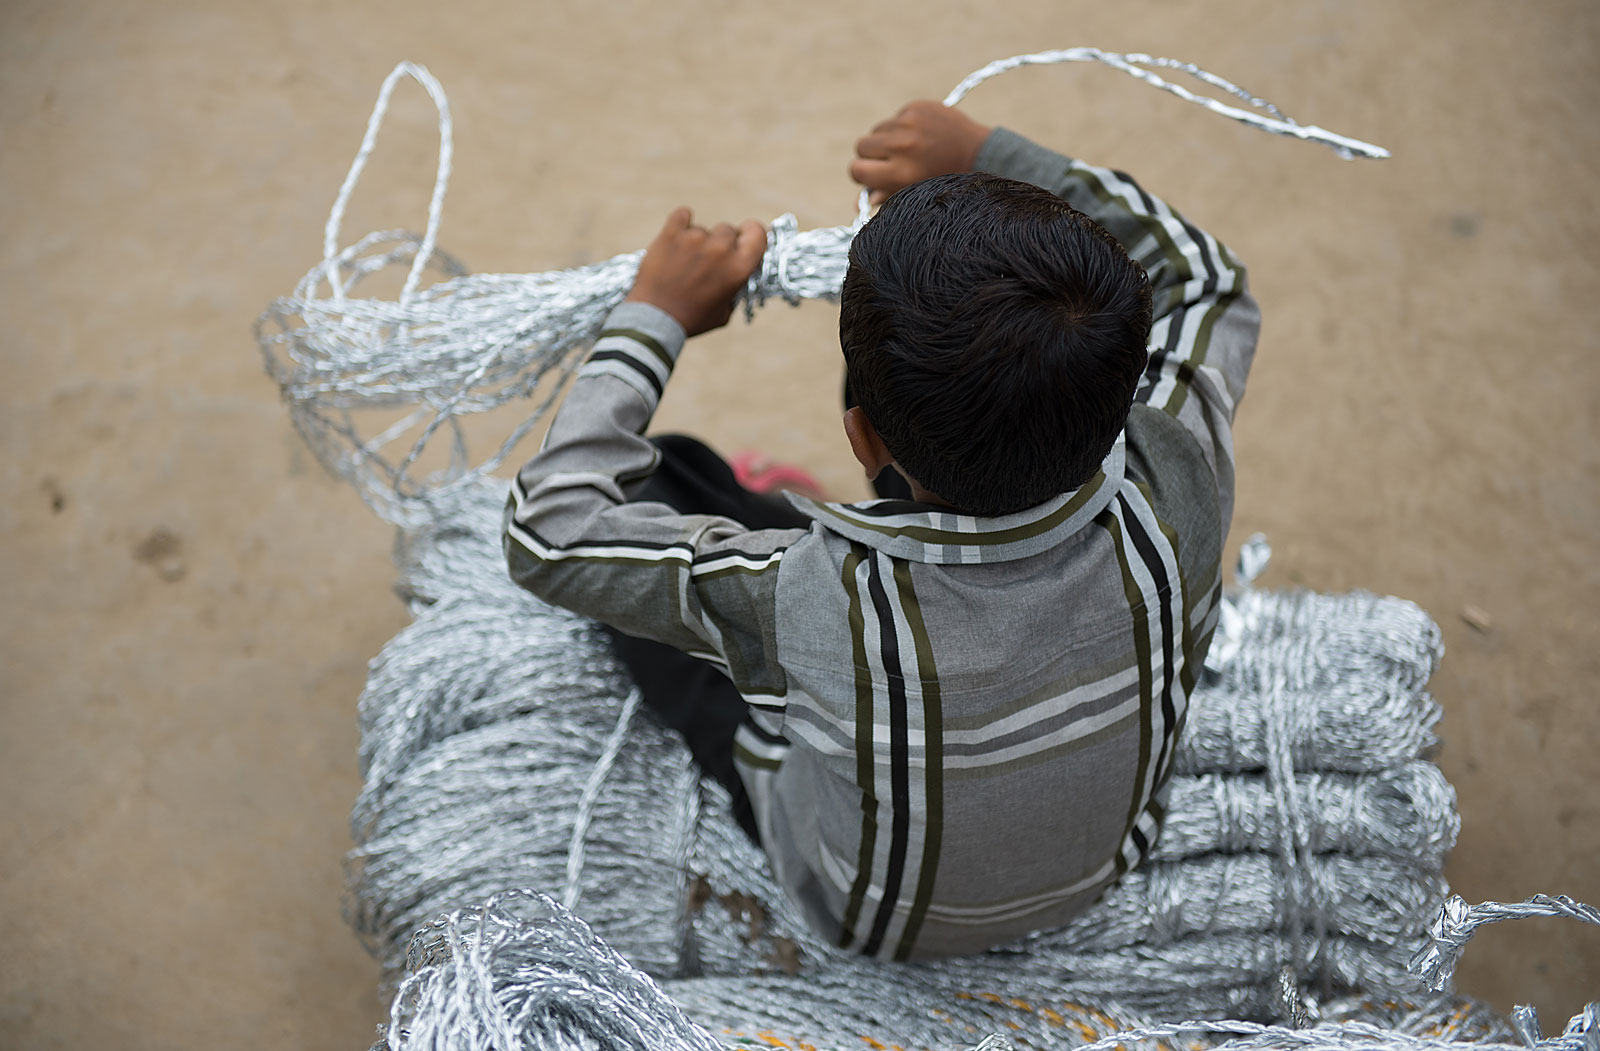 Boy who is a victim of child labour sits on a bundle of ropes